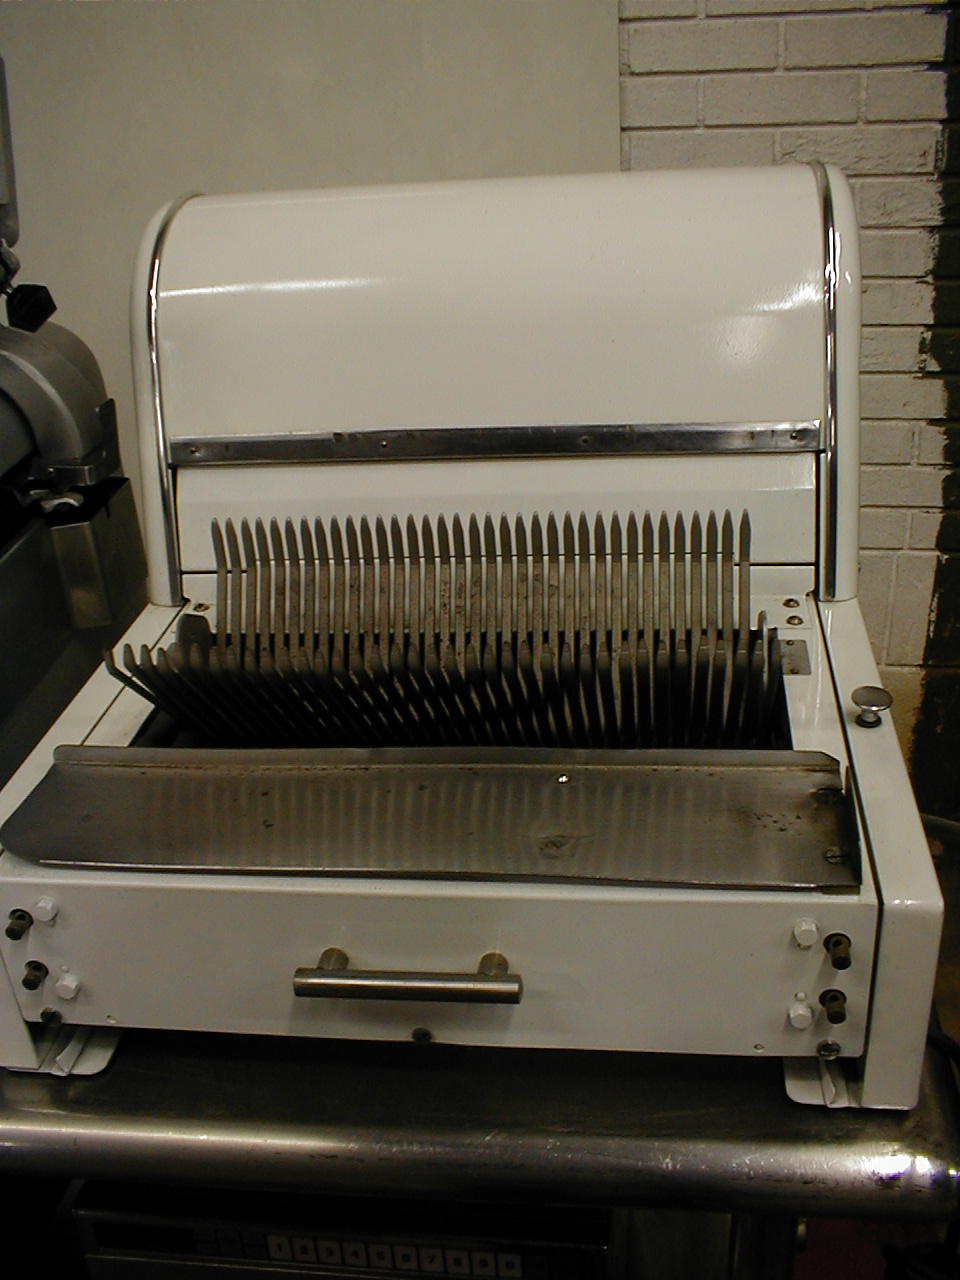 Berkel automatic bread slicer with new blades 115 voltage.